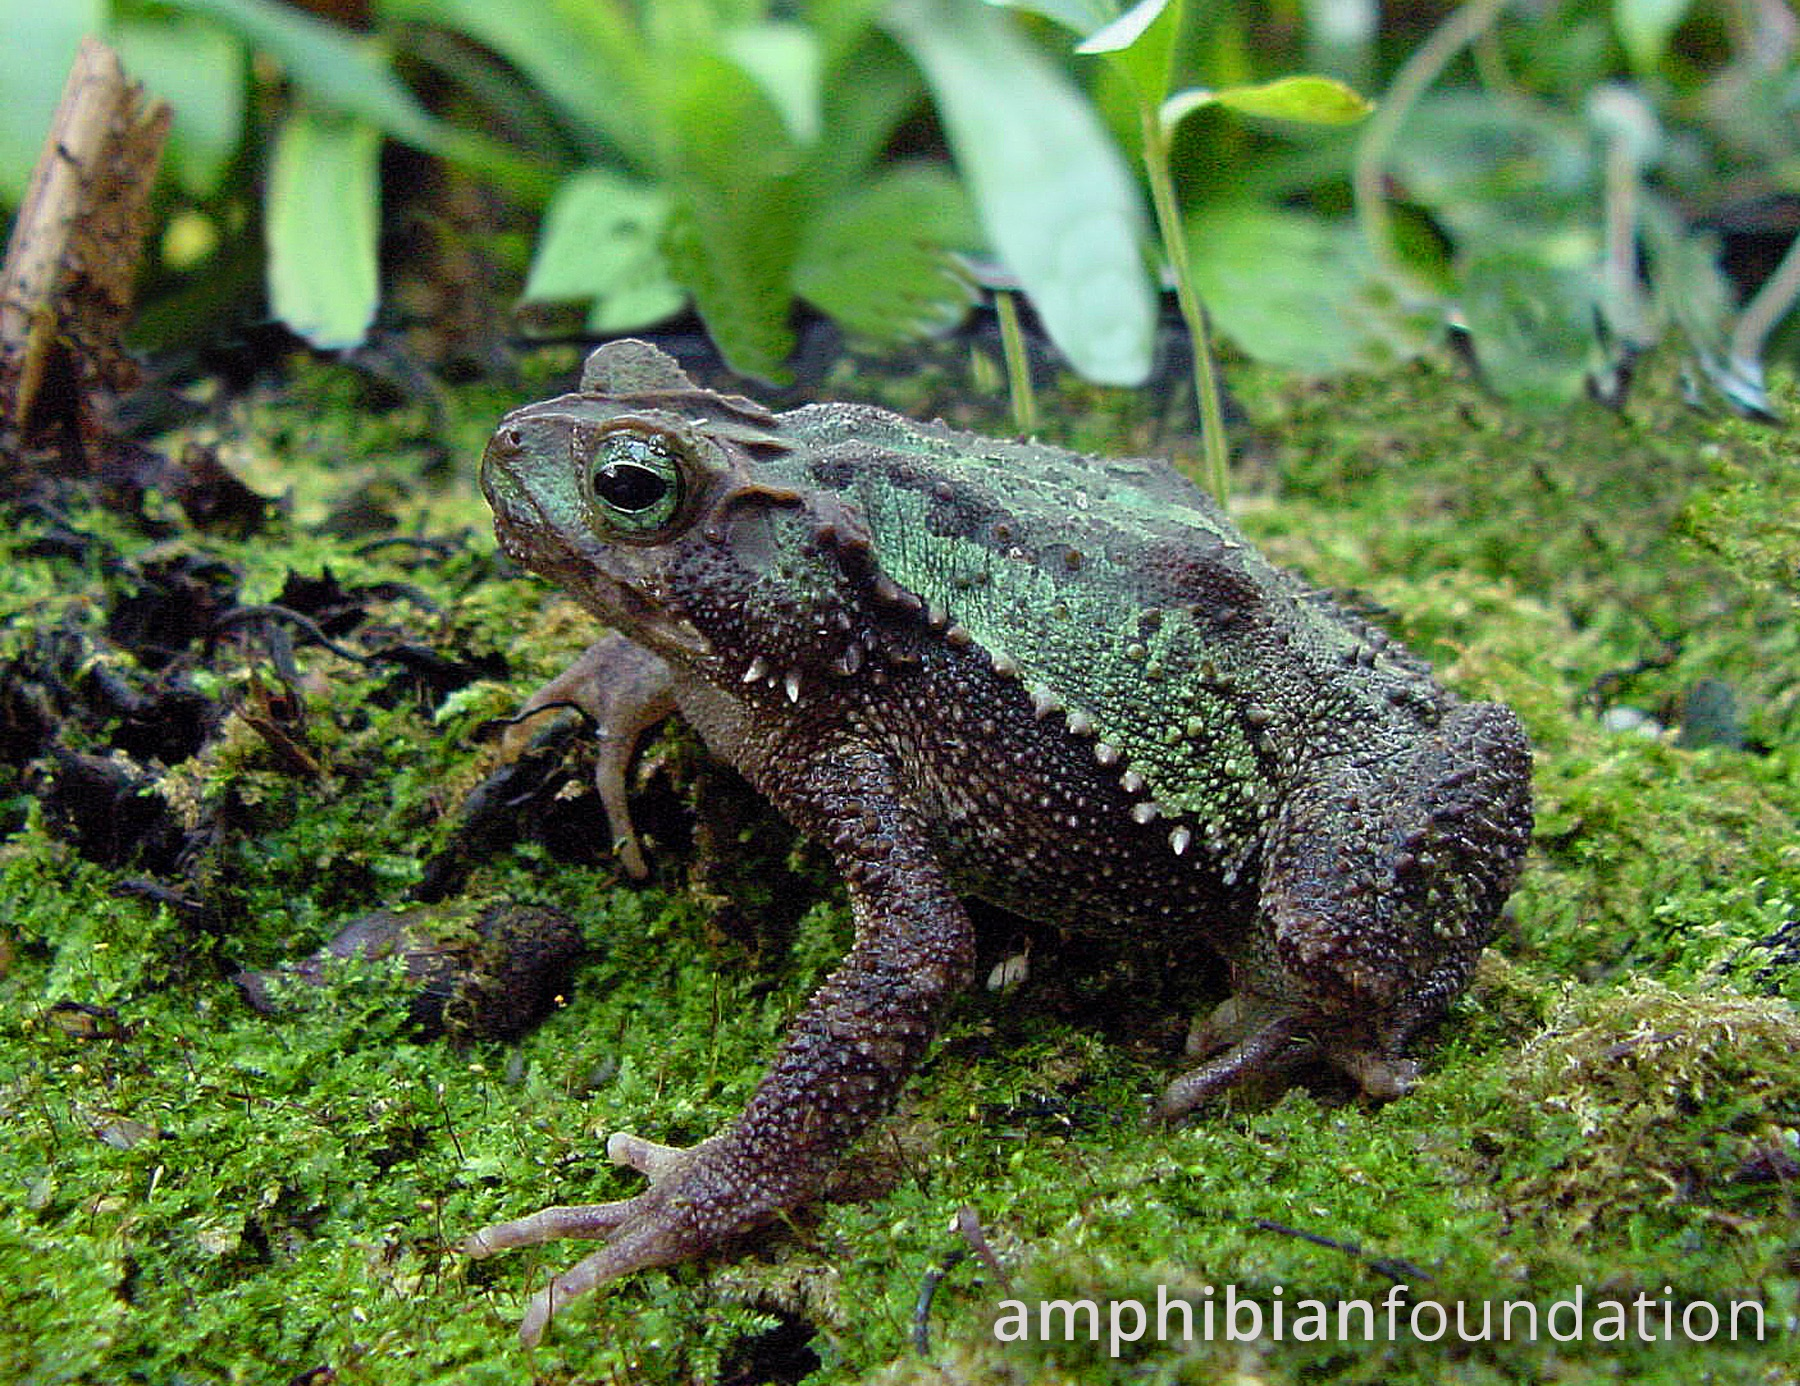 Amphibian Foundation Research And Conservation